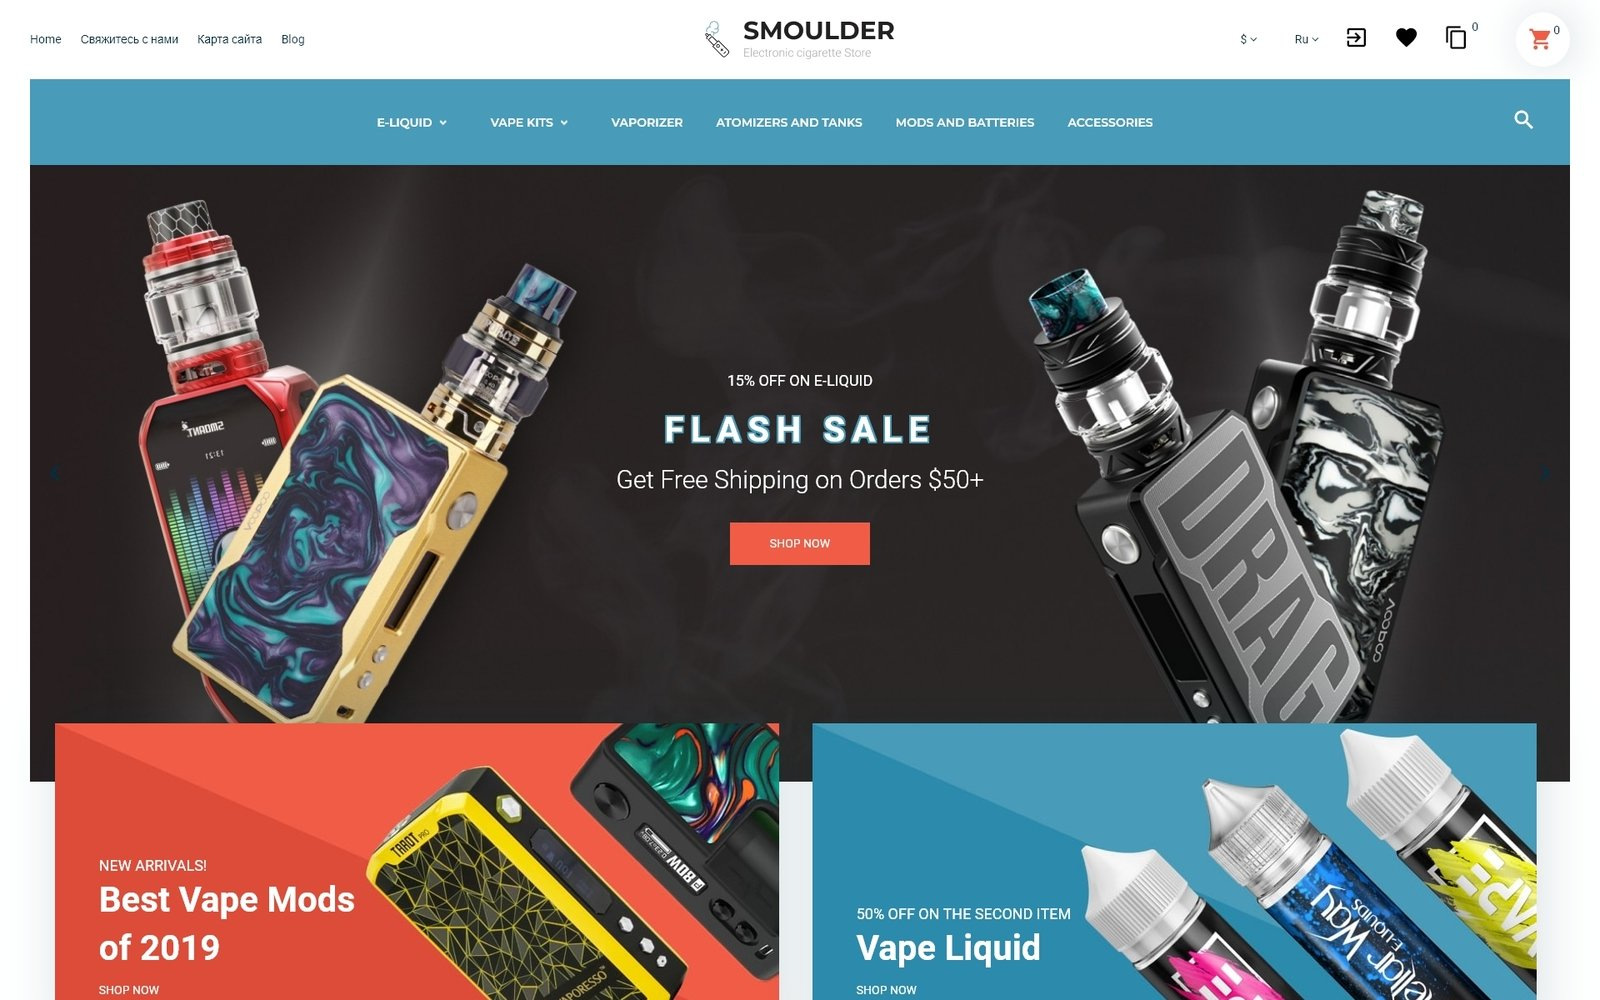 Smoulder - E-cigarette Website Design PrestaShop Theme